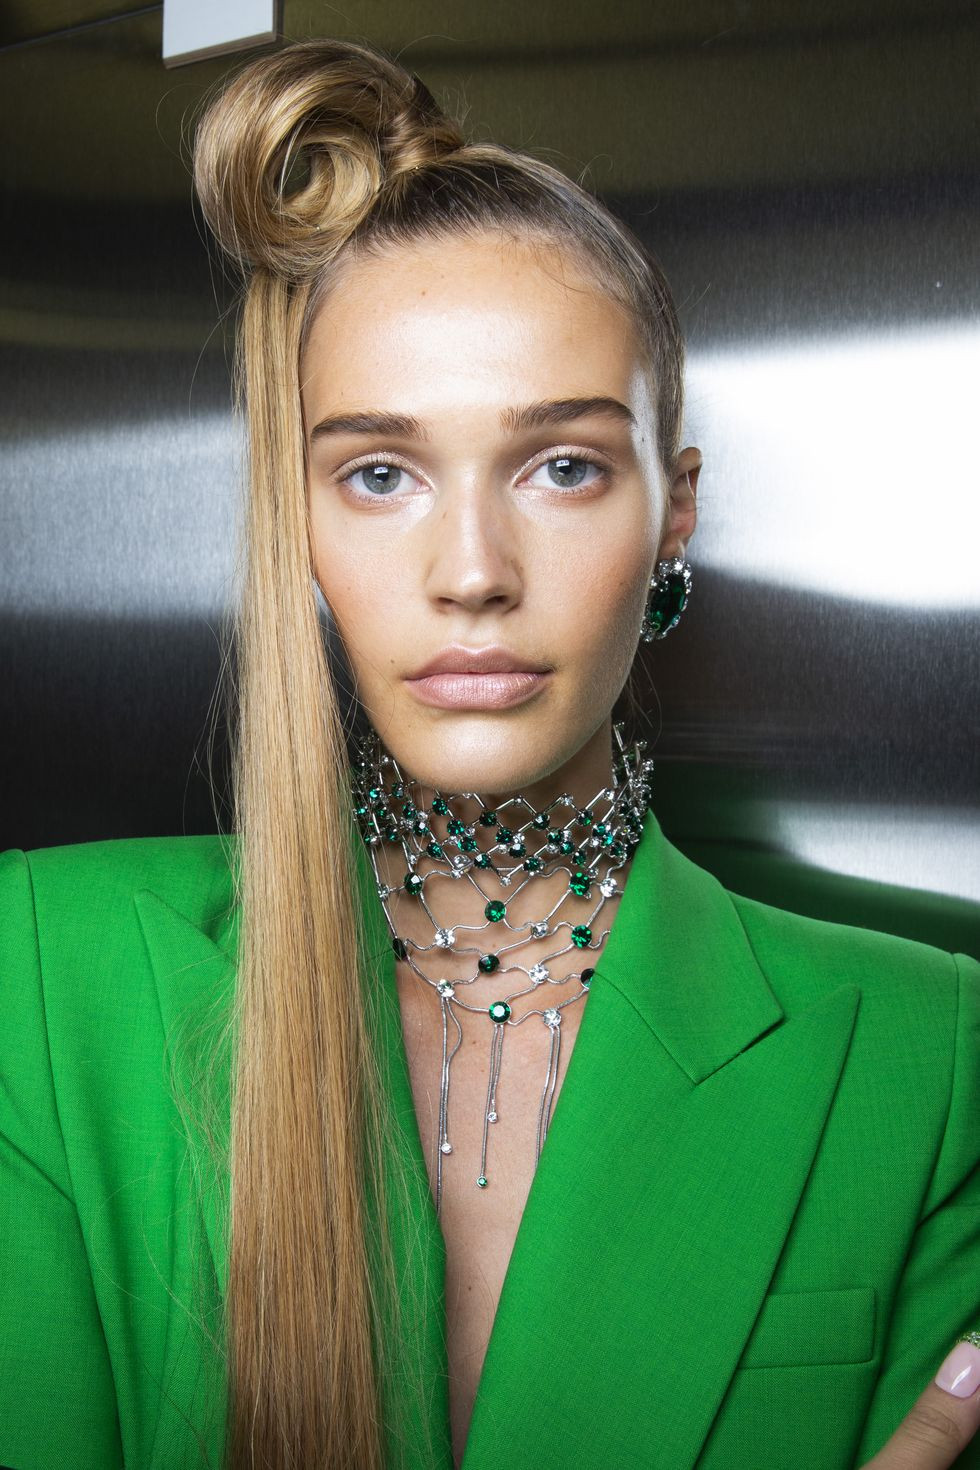 Area Spring 2019 Hair Trend Super Long Hair - Hair Blog Australia